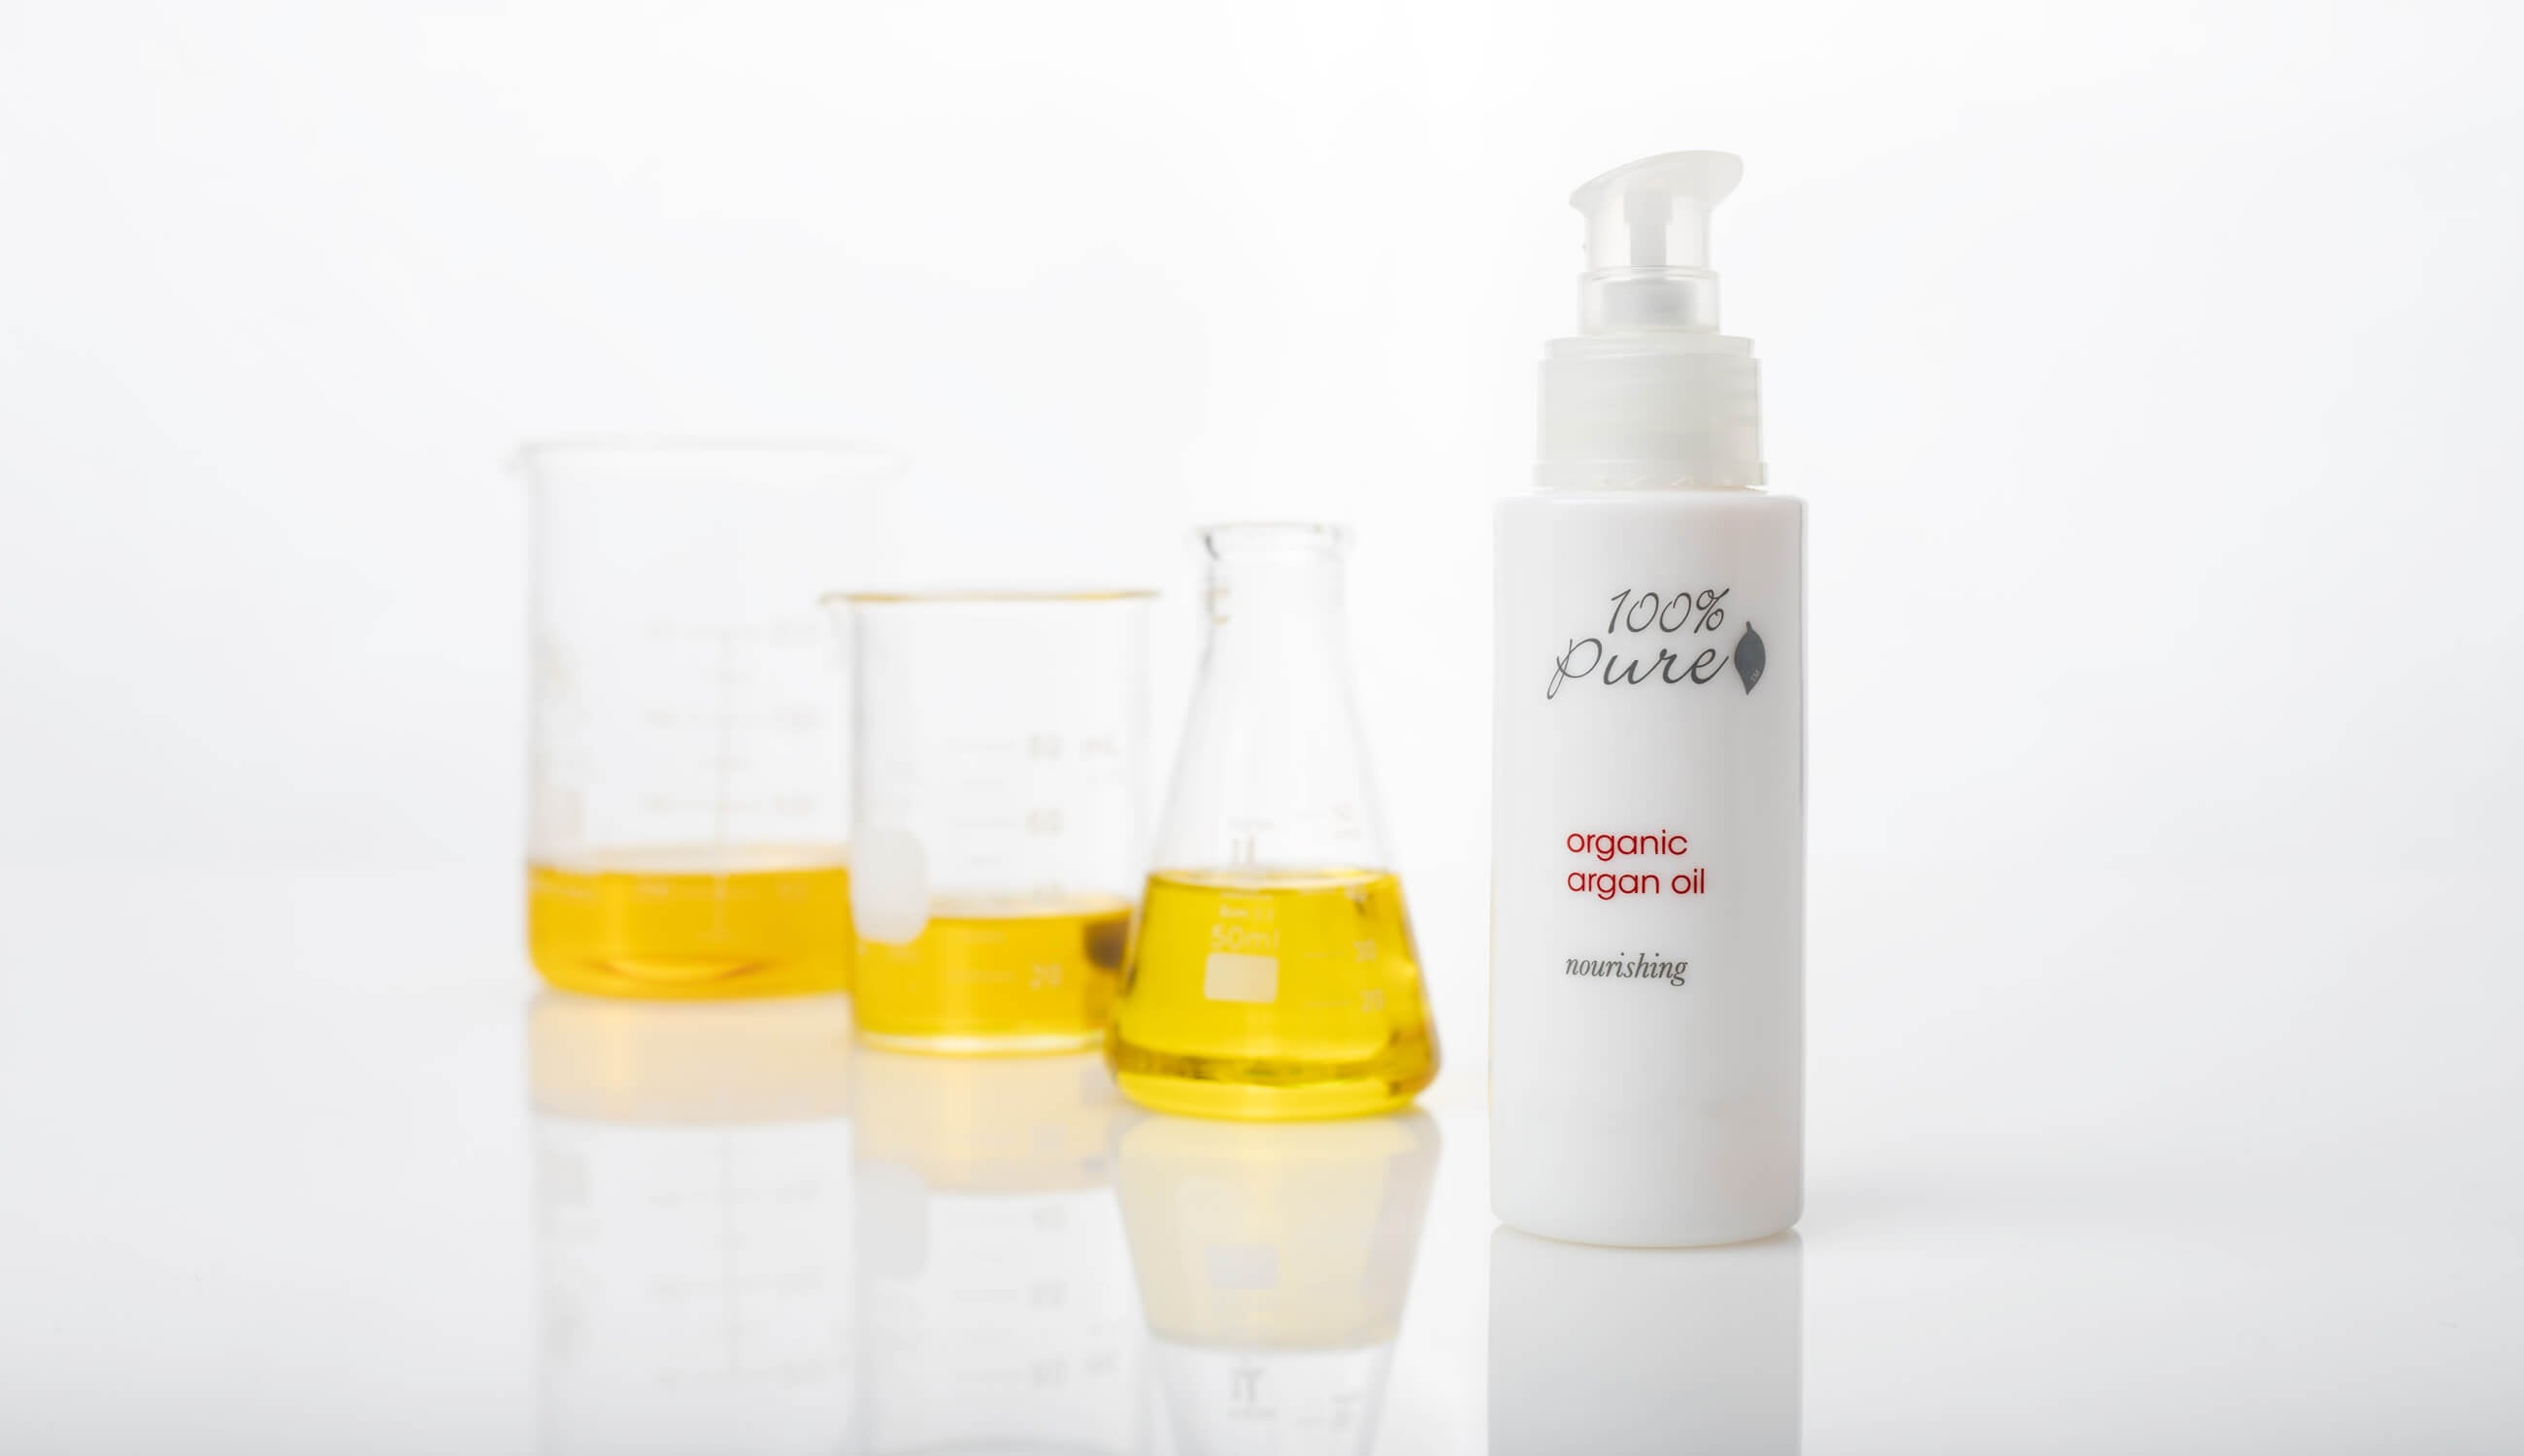 Argan-Oil-with-Oils-in-Glass